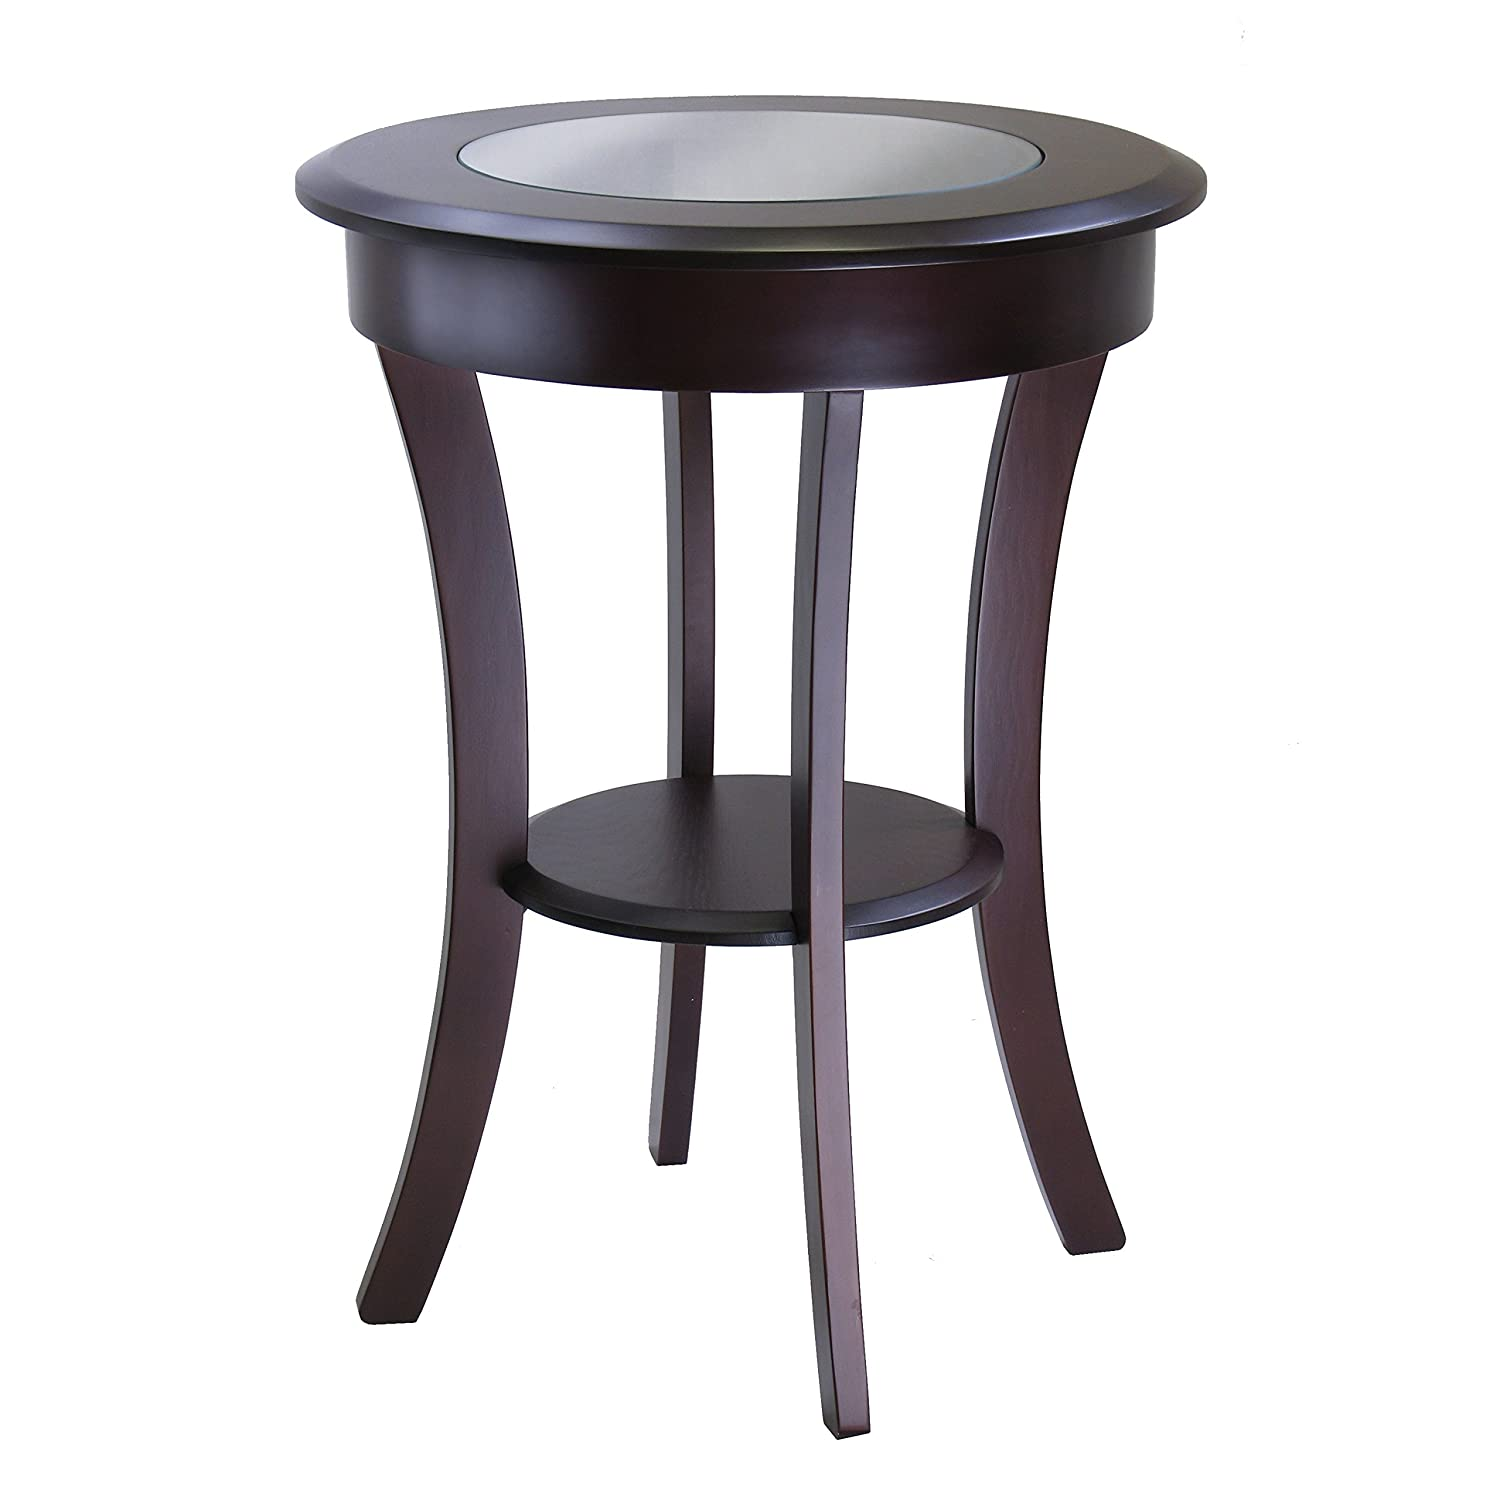 Superieur Amazon.com: Winsome Wood Cassie Accent Table With Glass Top, Cappuccino  Finish: Kitchen U0026 Dining